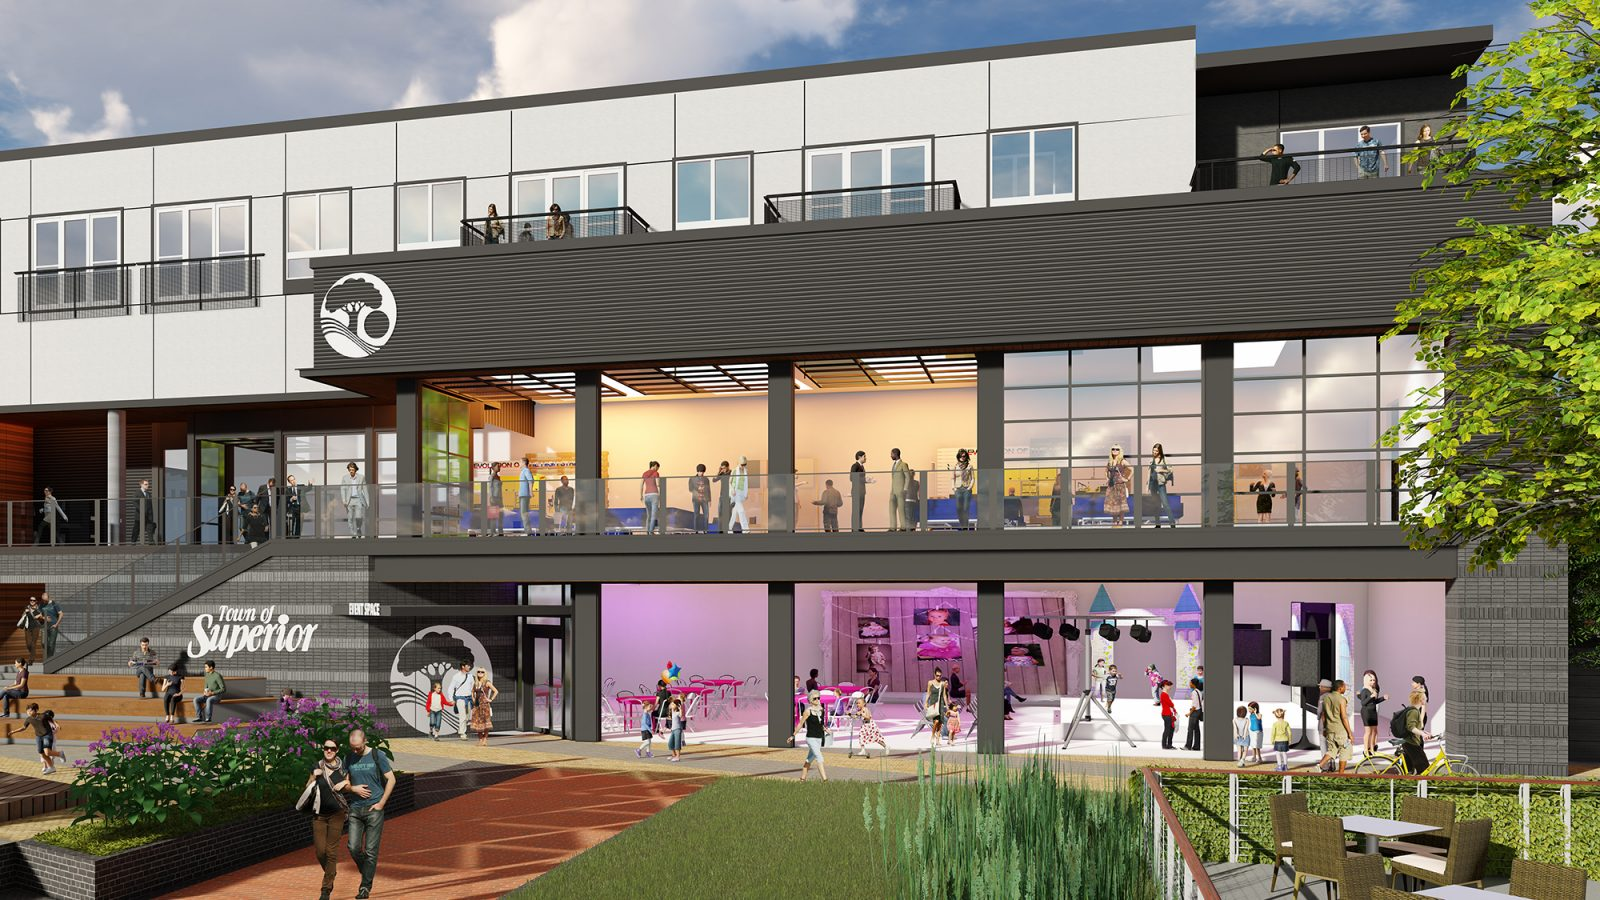 Downtown Superior: Community Rendering